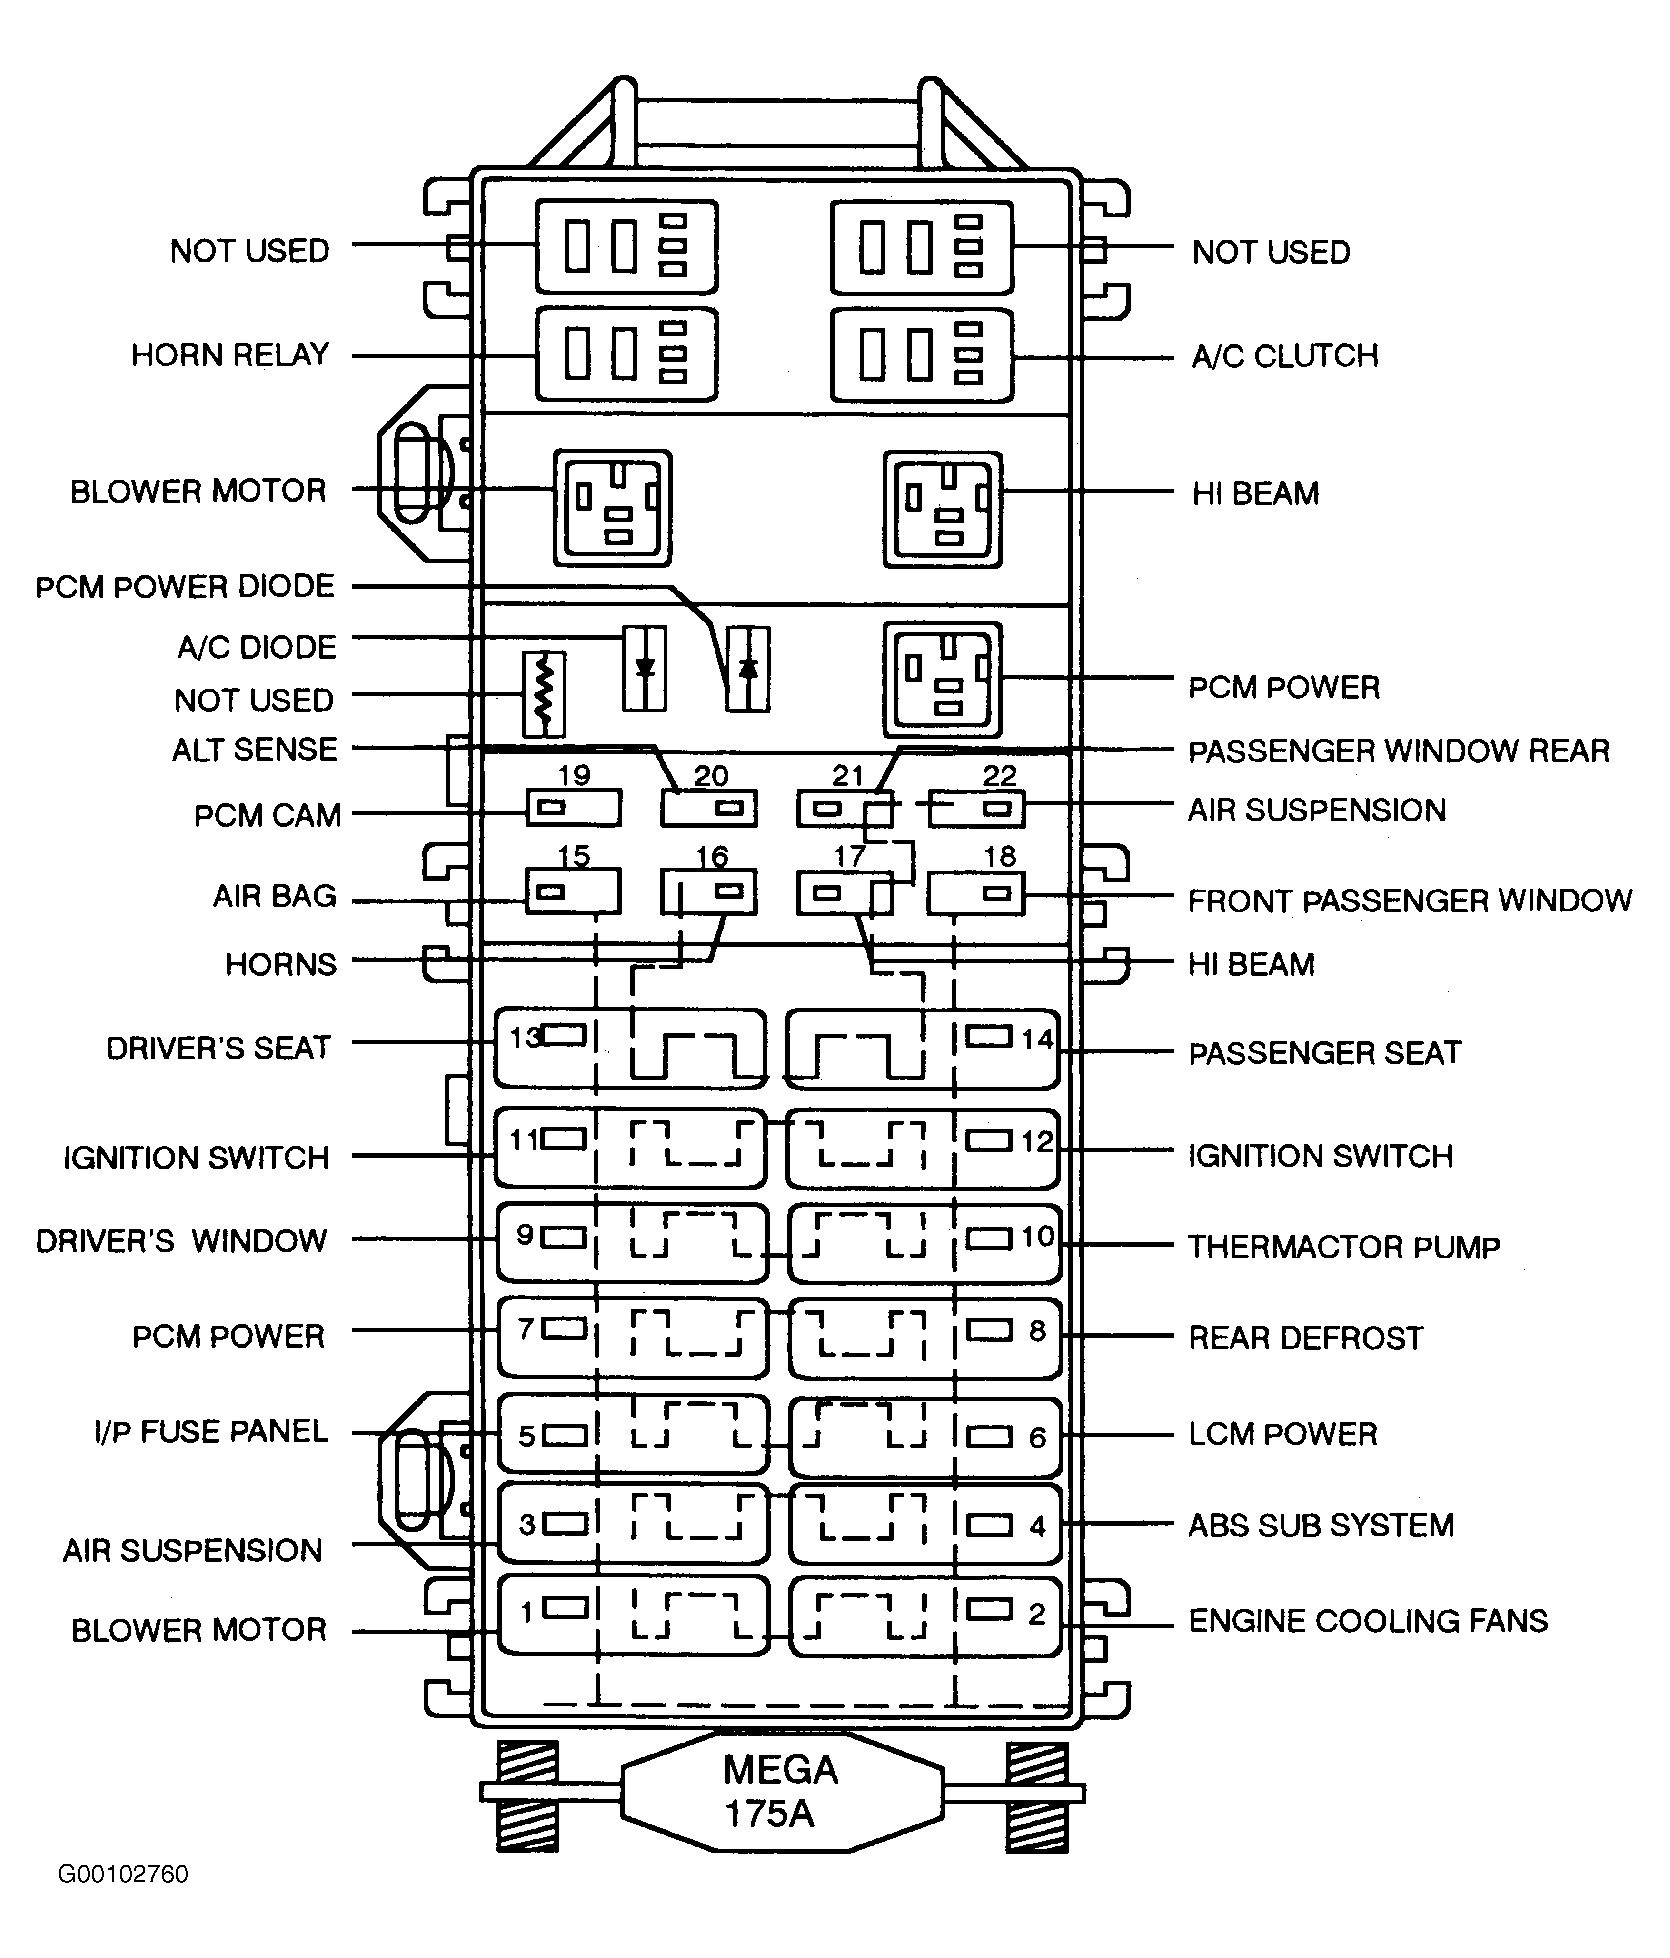 2001 Lincoln Ls Engine Diagram Lincoln Ls Wiring Diagram Wiring Diagram toolbox Of 2001 Lincoln Ls Engine Diagram